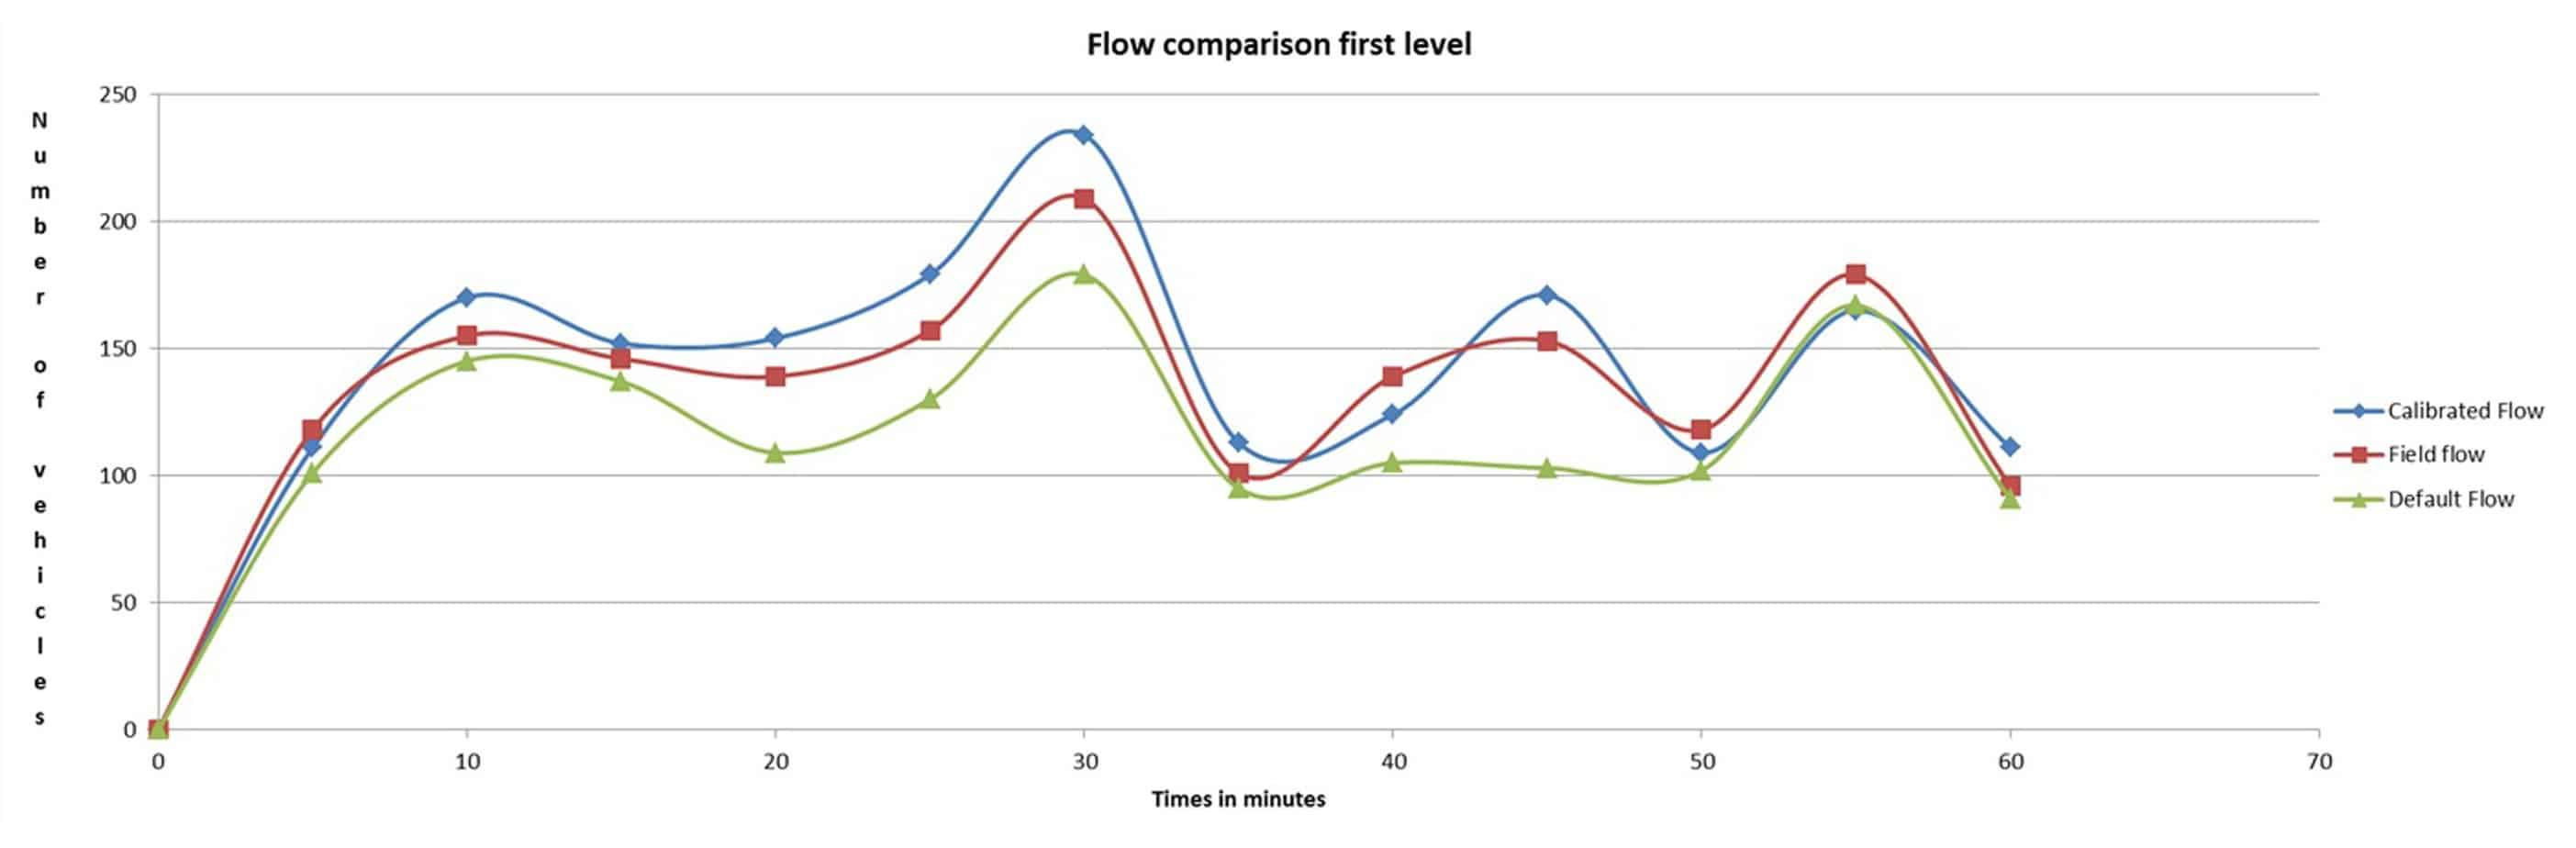 Comparison of Calibrated Flow - first level - roundabout 2